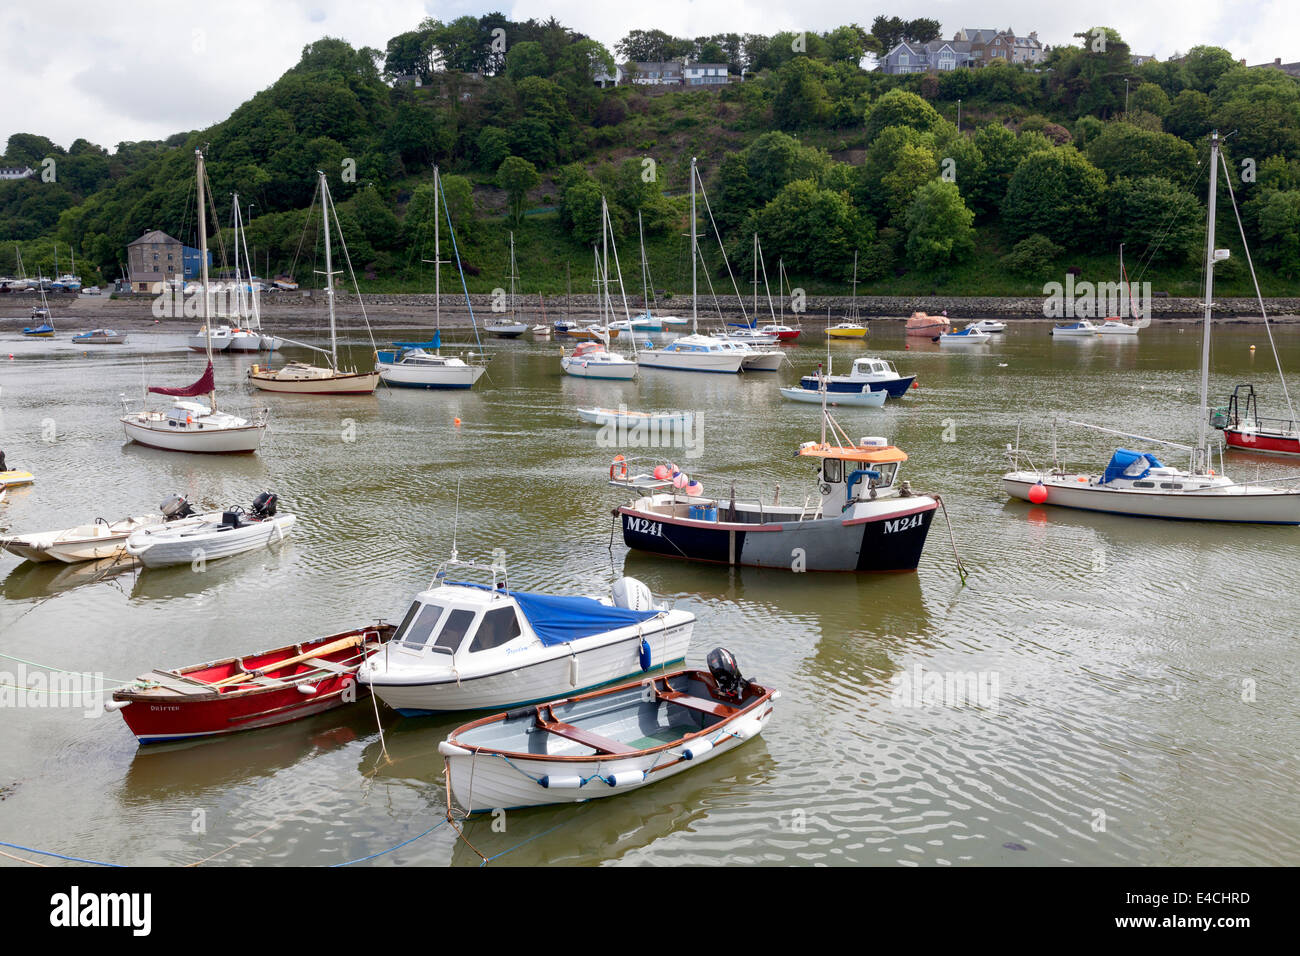 The harbour at Lower Fishguard, Pembrokeshire - Stock Image